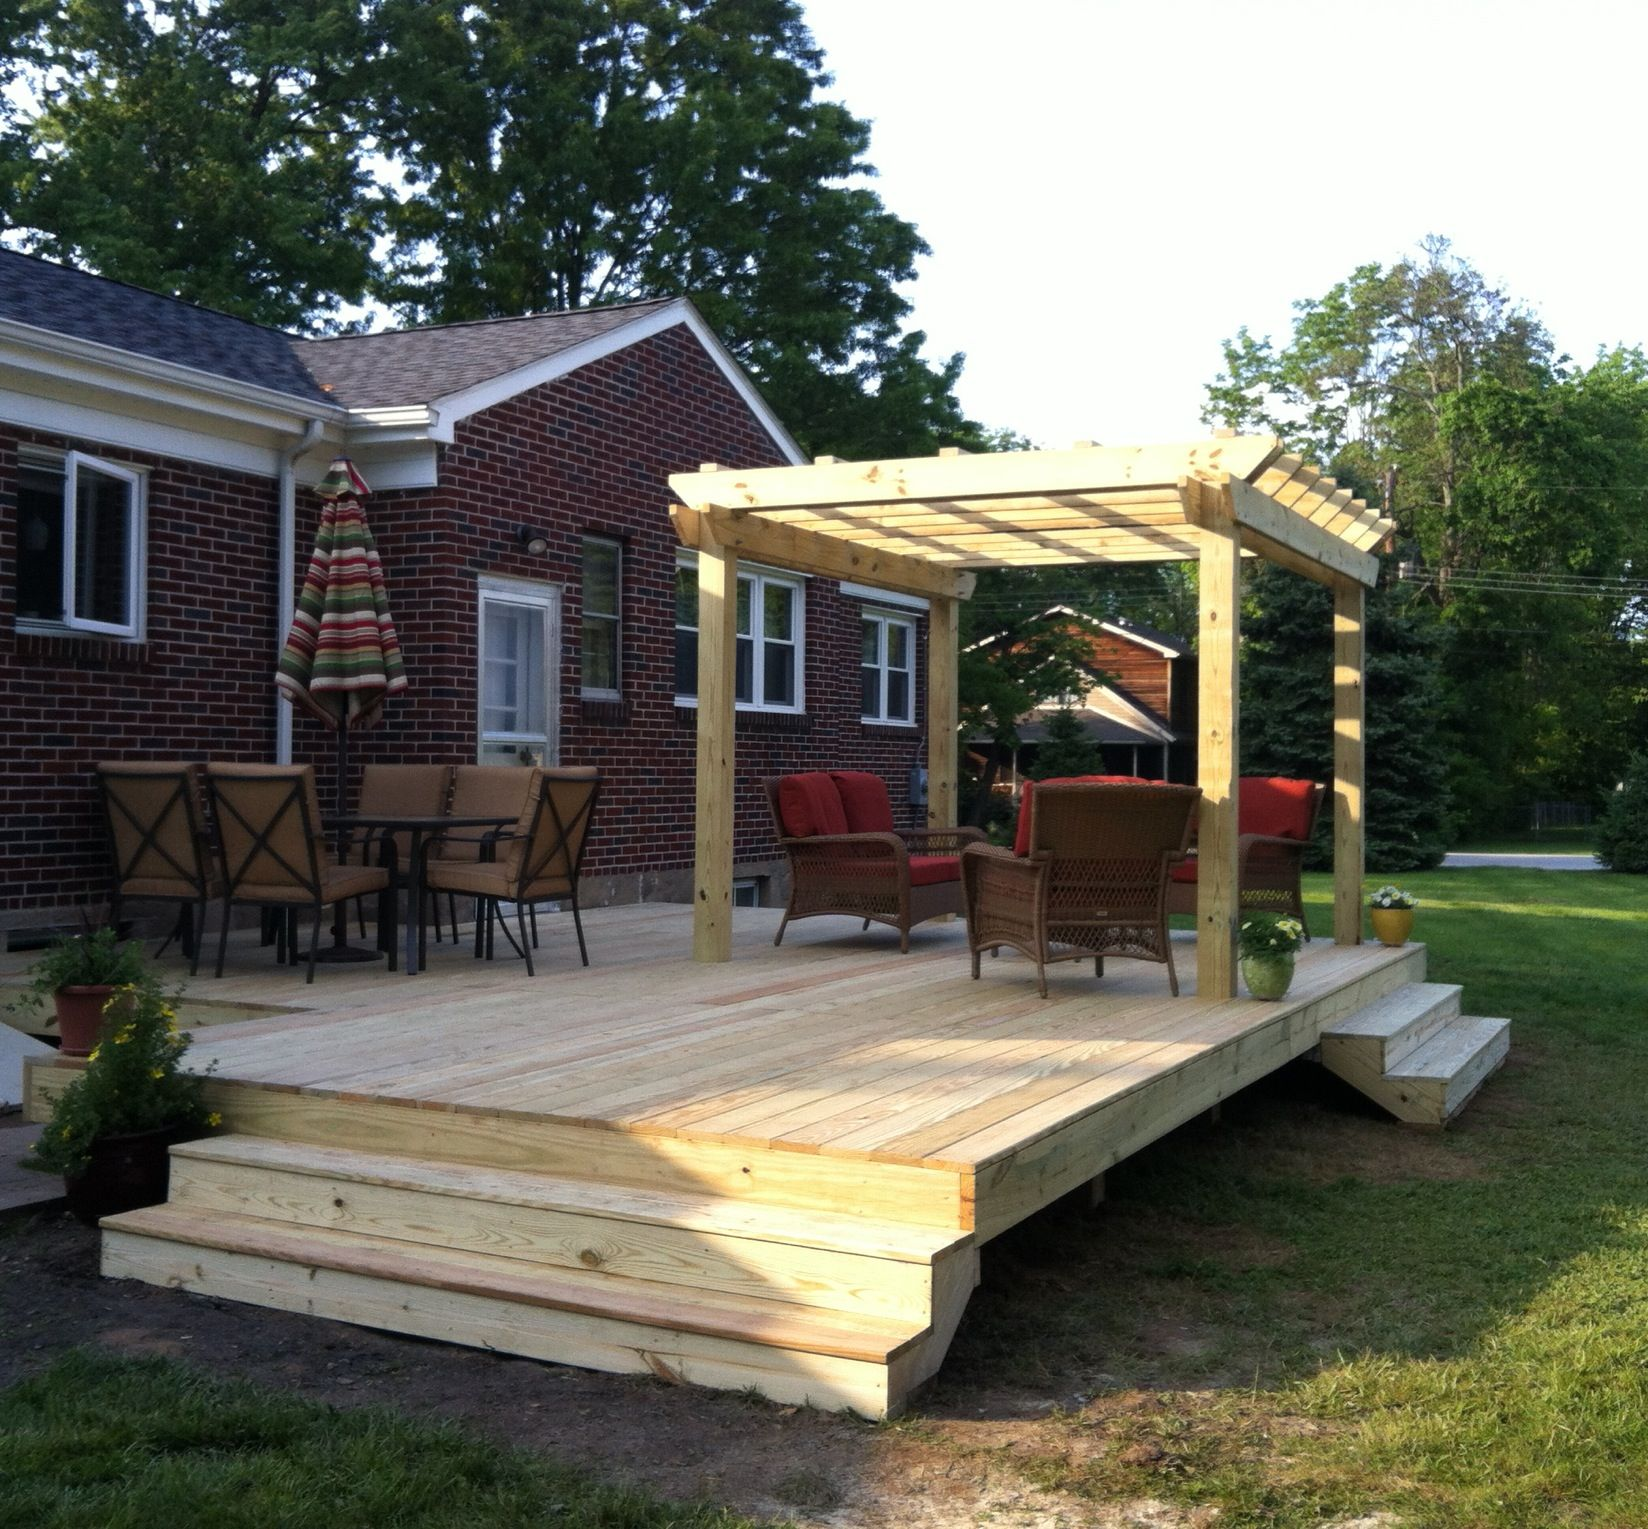 Deck With Pergola And No Railings Dining And Conversation Area